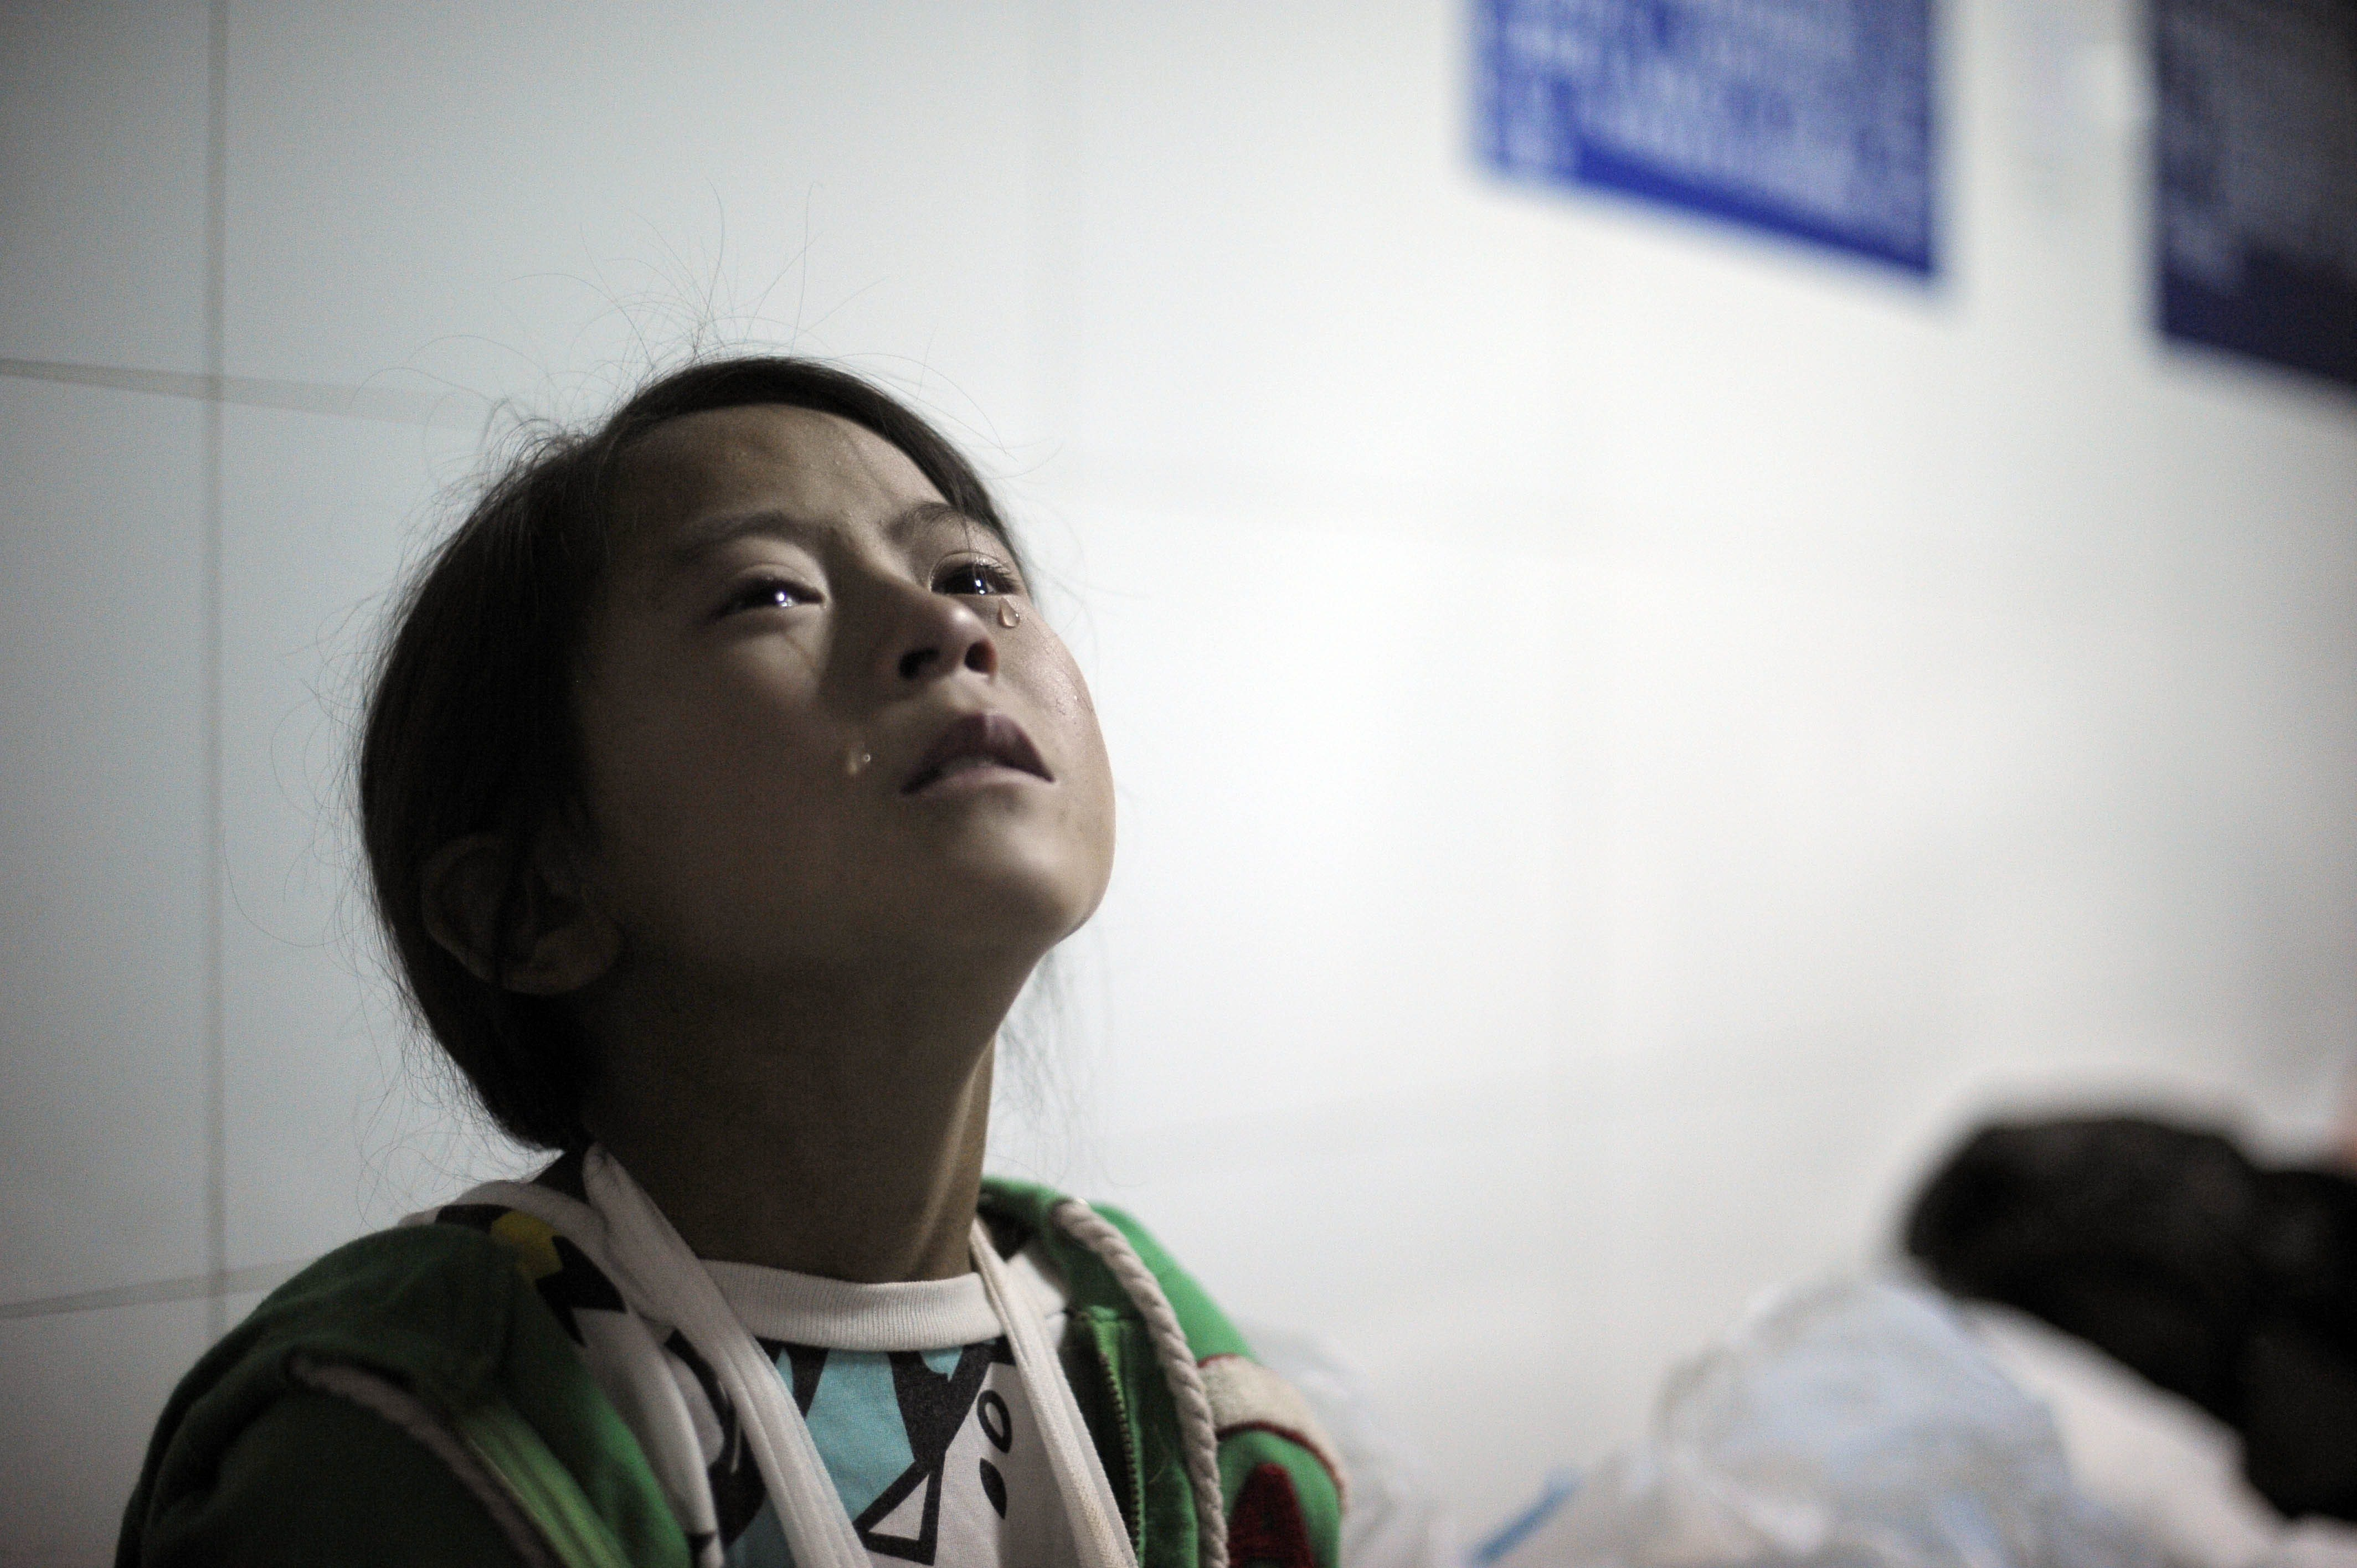 Aug. 4, 2014. An injured girl cries in the corridor of Ludian hospital after a 6.1 magnitude earthquake hit Ludian county in Zhaotong, in southwest China's Yunnan province. At least 398 people have been confirmed dead, with 80,000 houses destroyed and 124,000 seriously damaged.